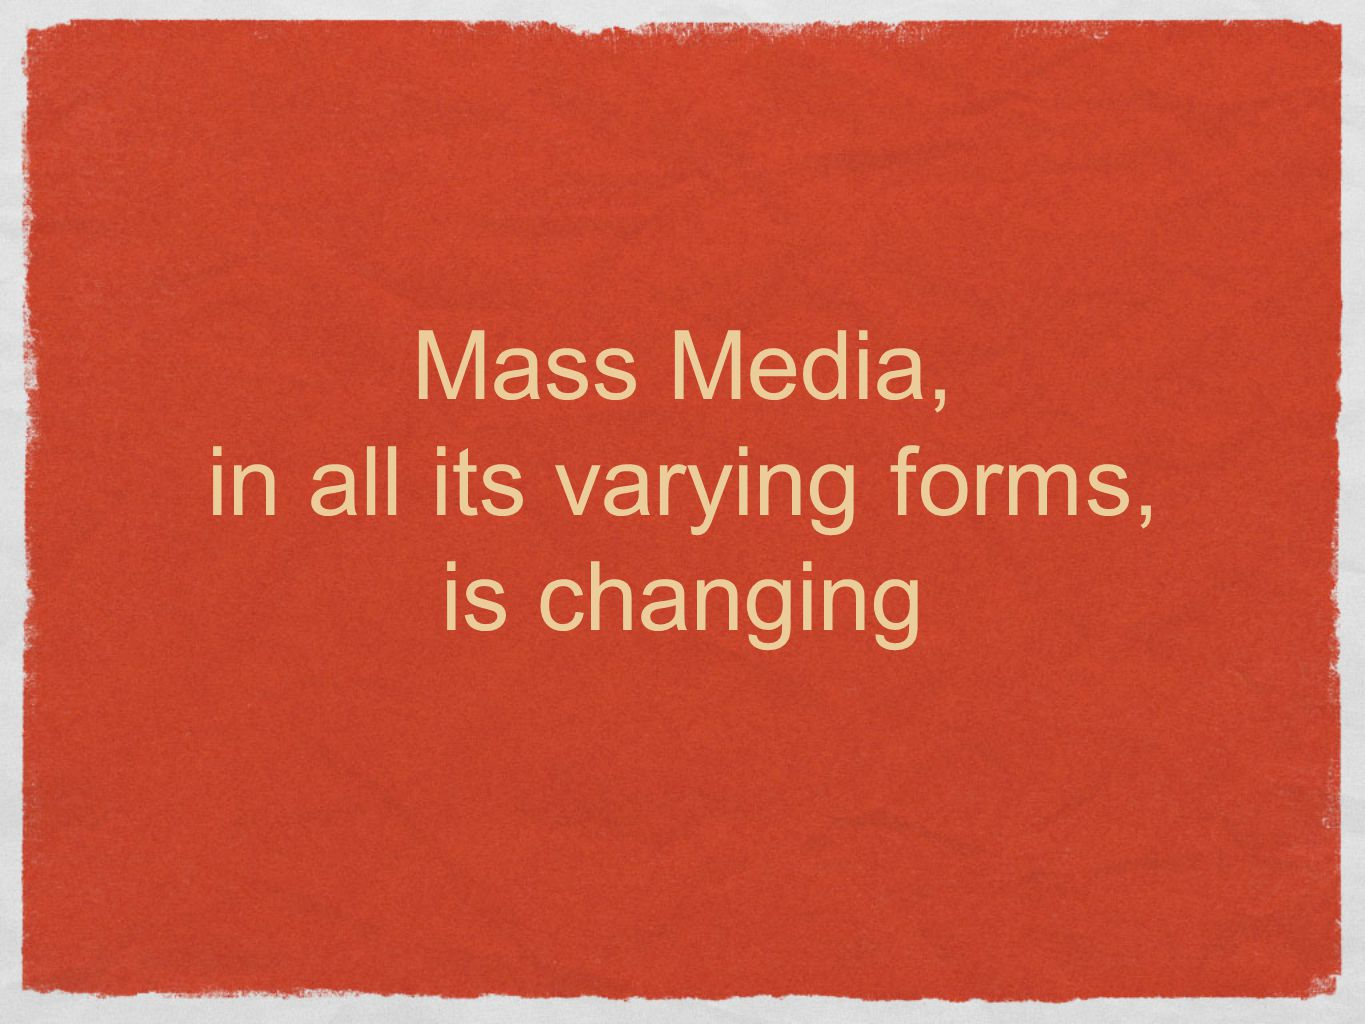 Mass Media, in all its varying forms, is changing